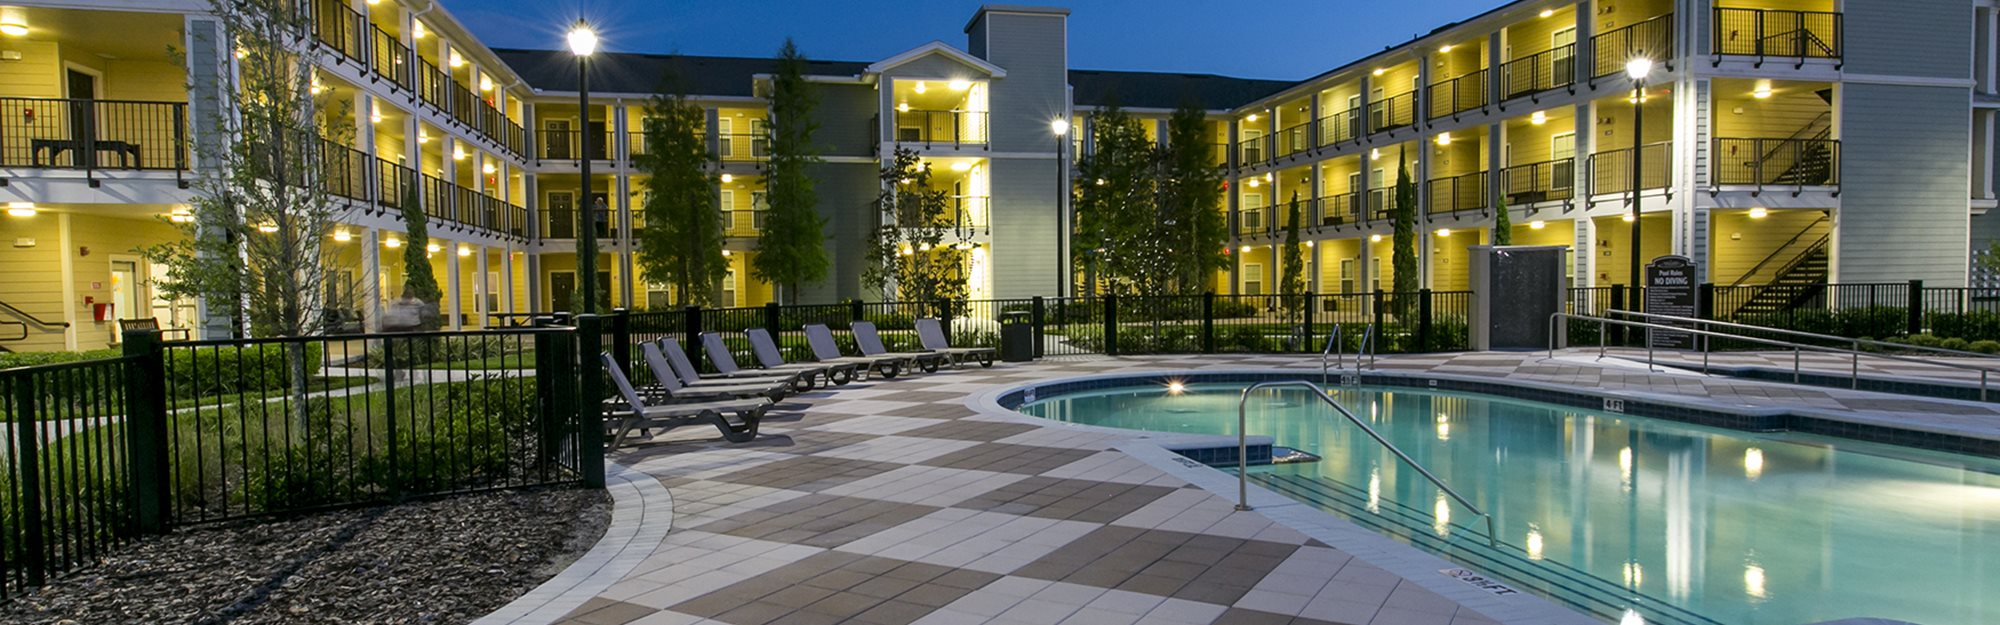 Fountains at Pershing Park Apartments for rent in Orlando, FL. Make this community your new home or visit other Concord Rents communities at ConcordRents.com. Pool